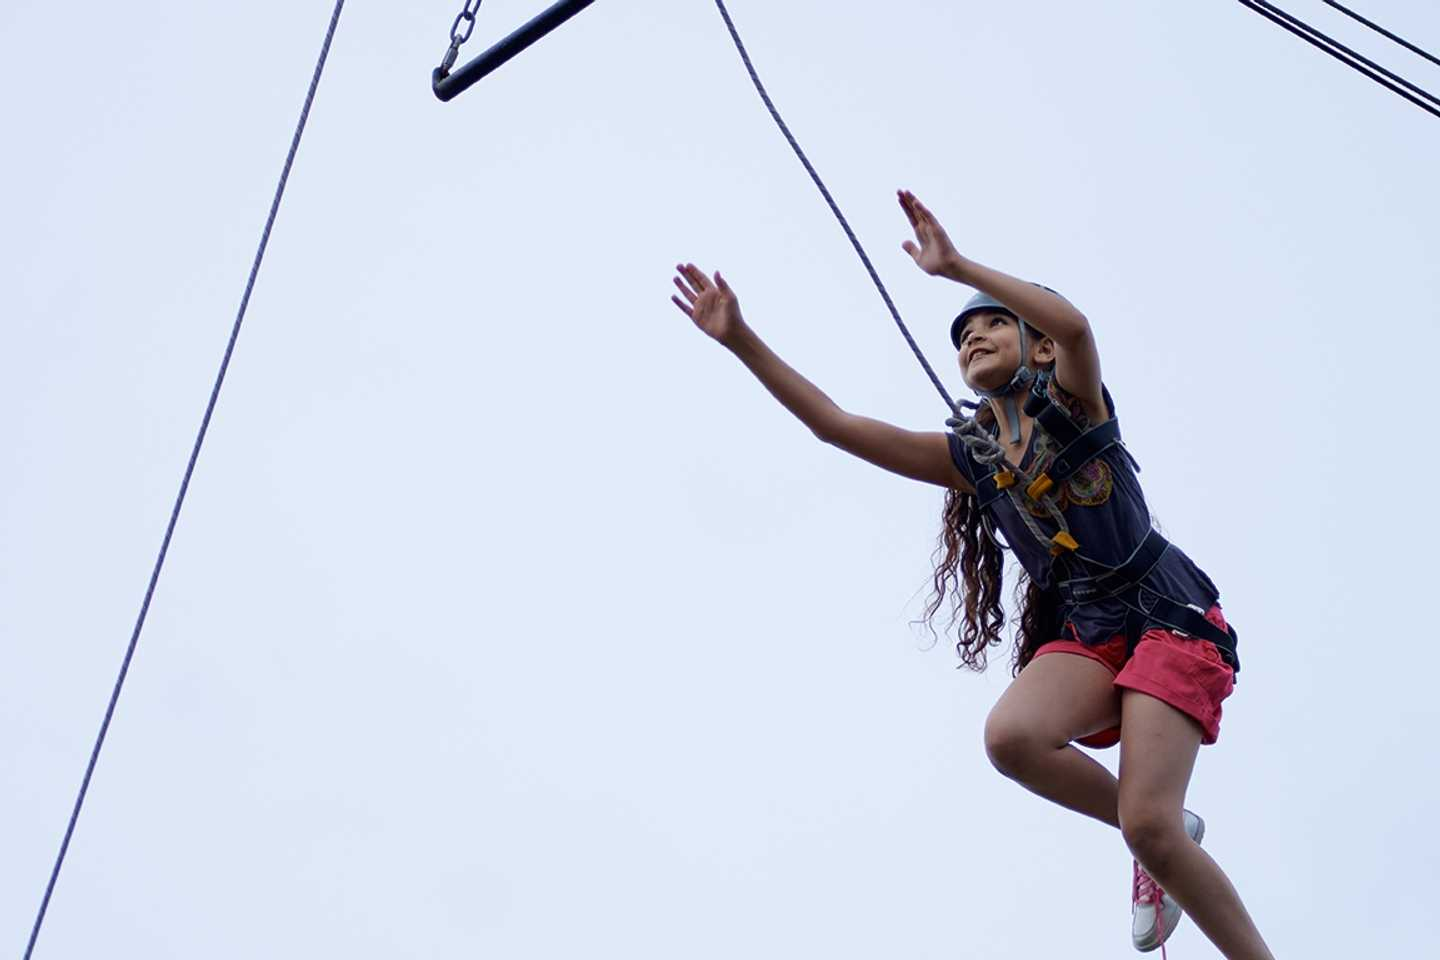 Child trying out the leap of faith in a harness